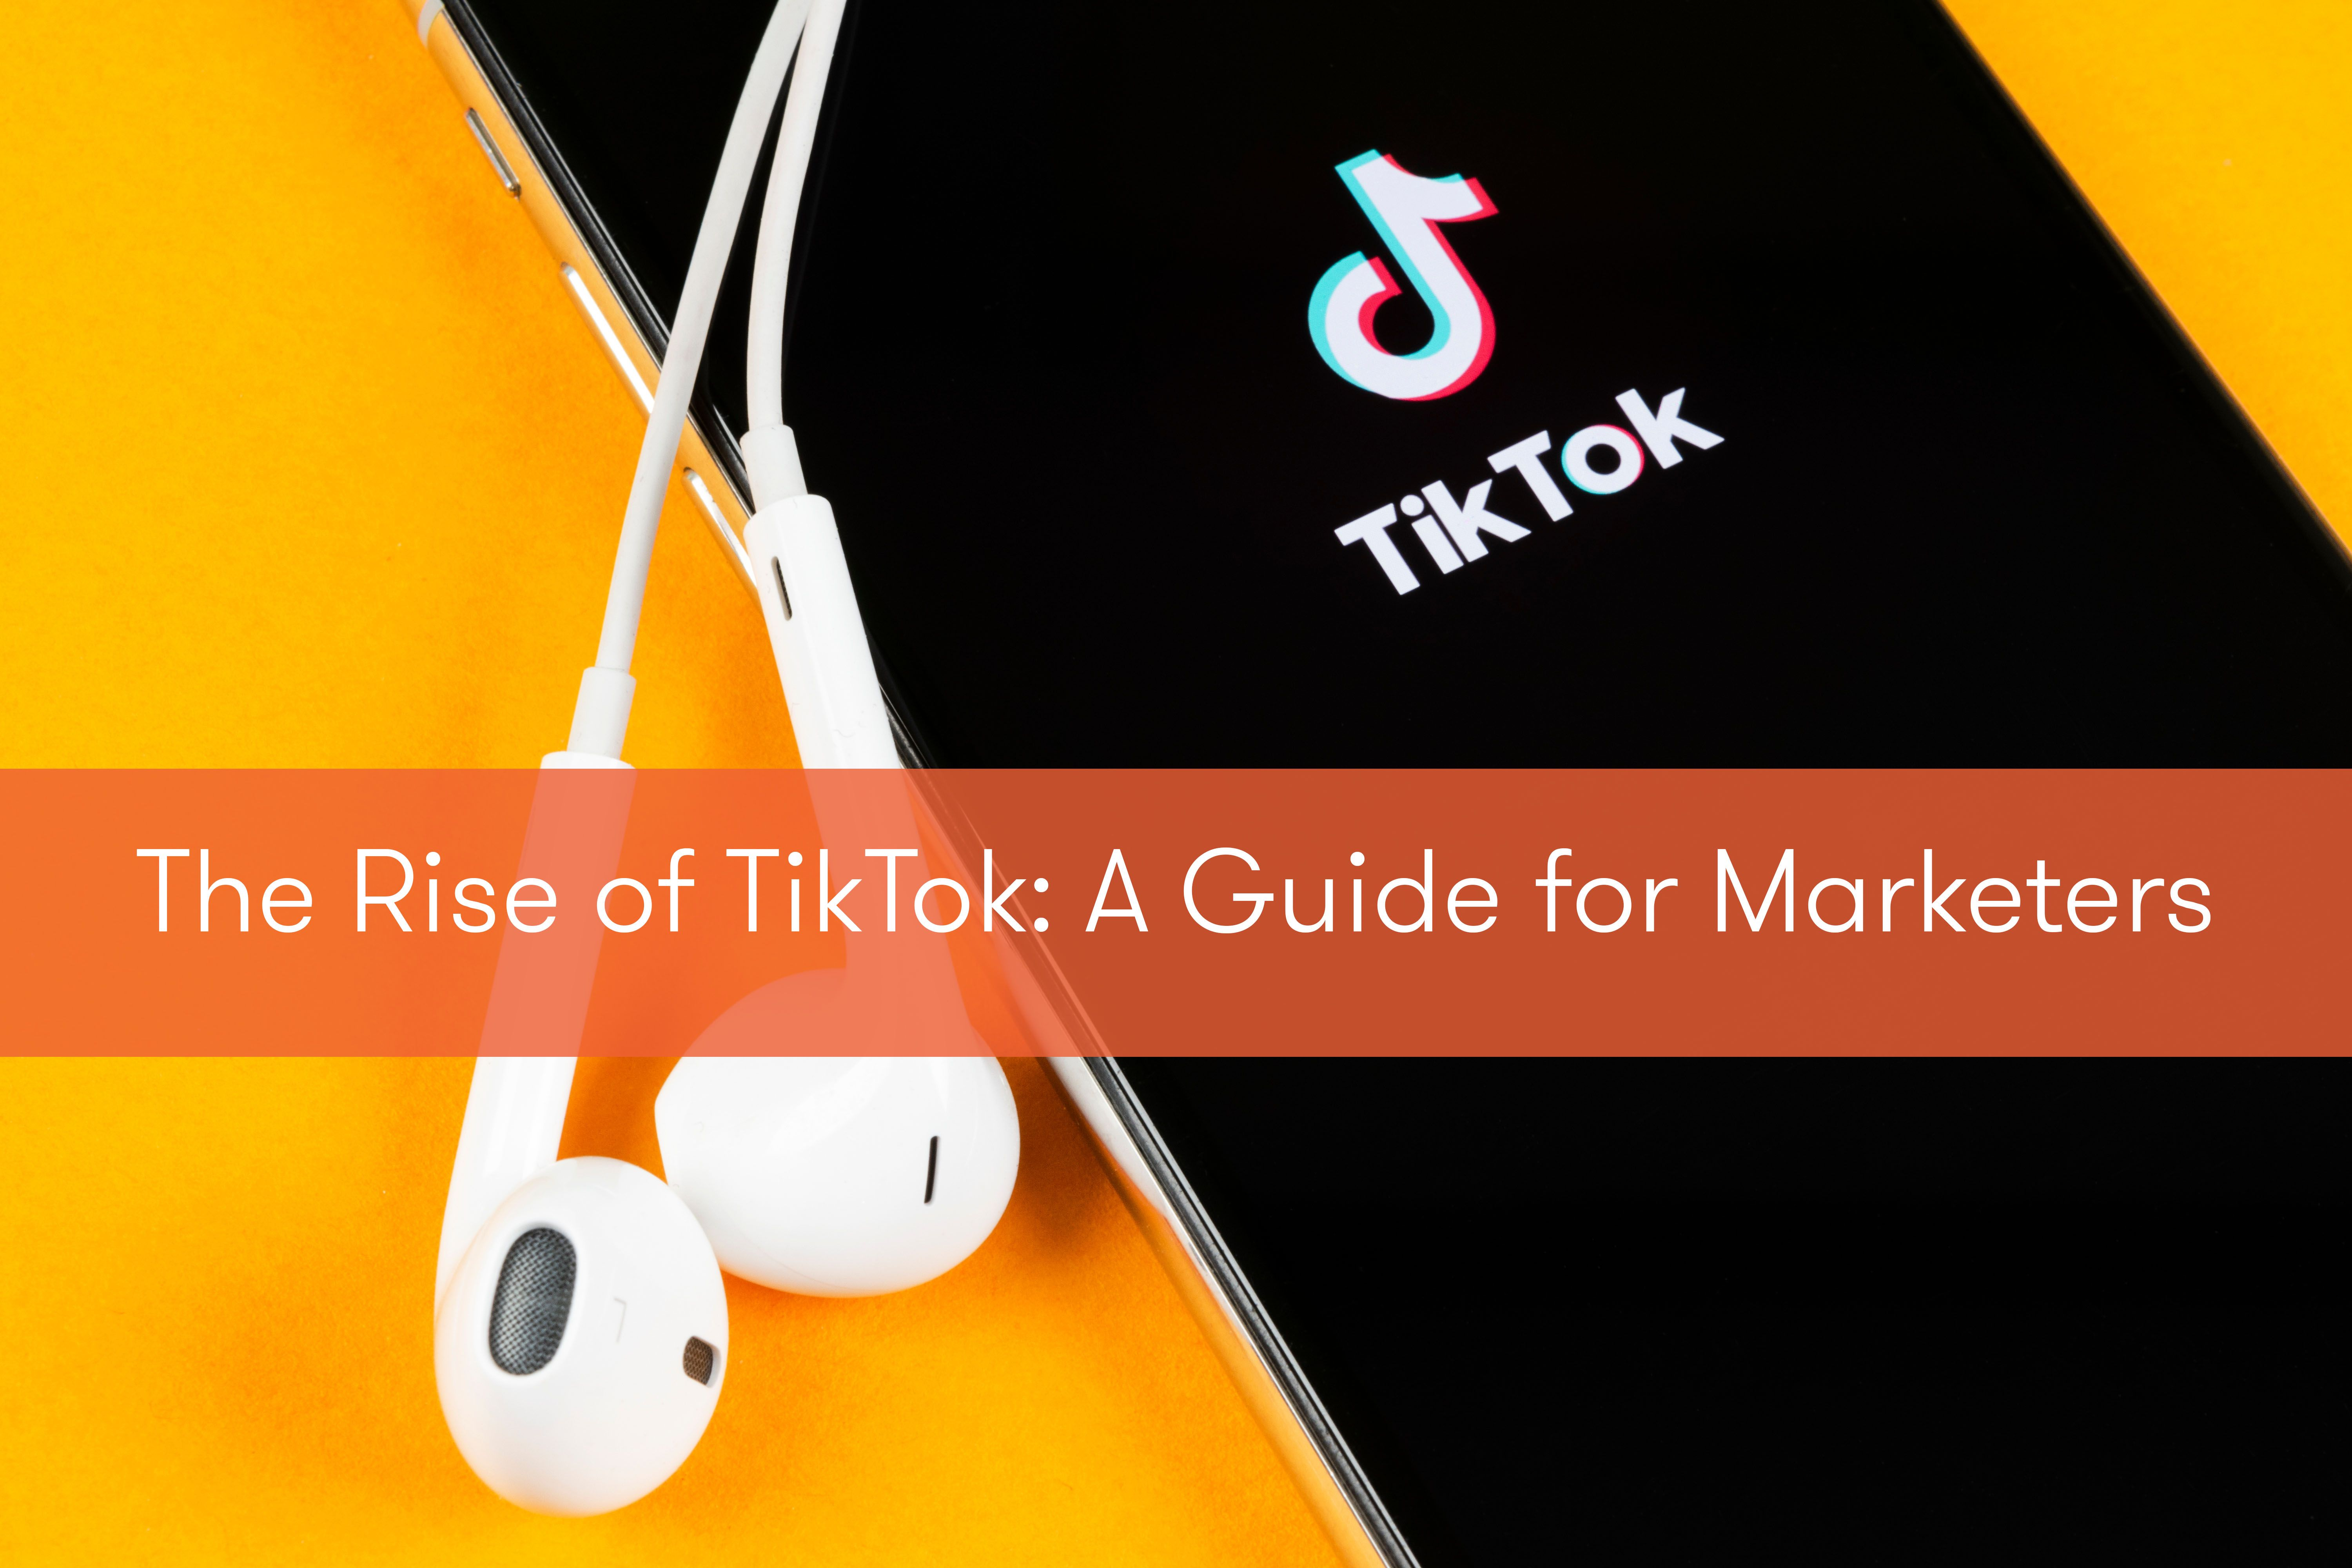 The Rise Of Tiktok A Guide For Marketers Network Marketing Marketing Network Marketing Business